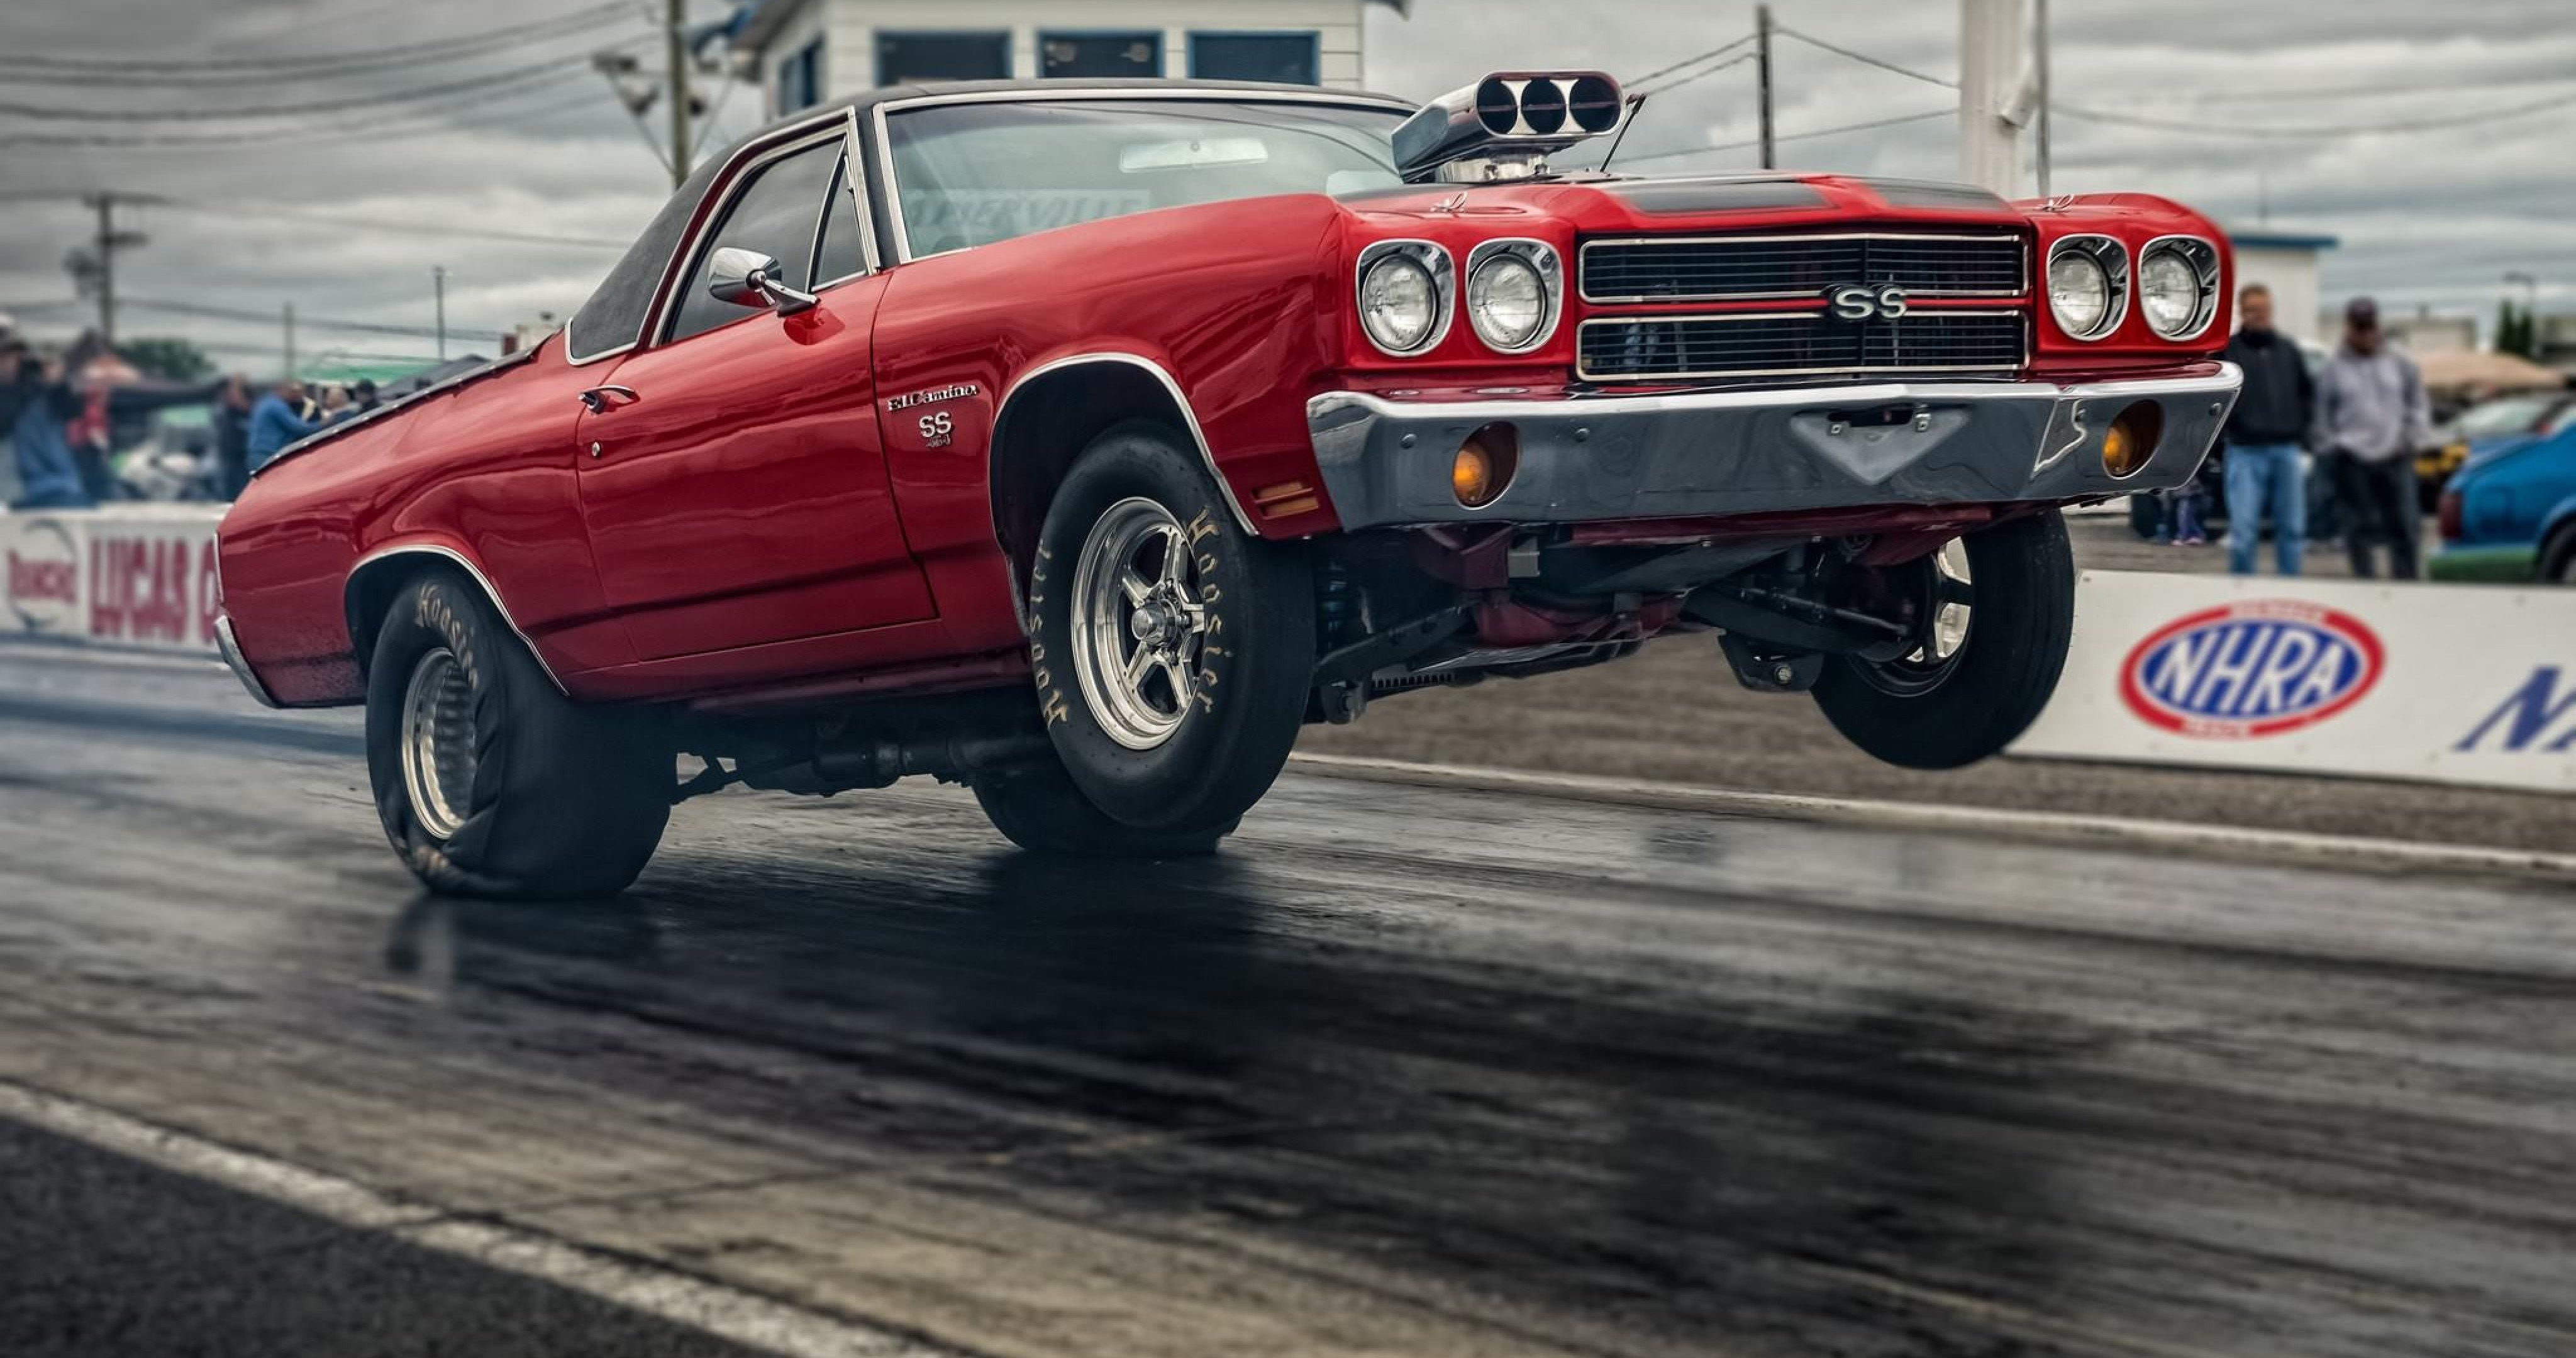 Chevy Race Muscle Car Wallpapers Top Free Chevy Race Muscle Car